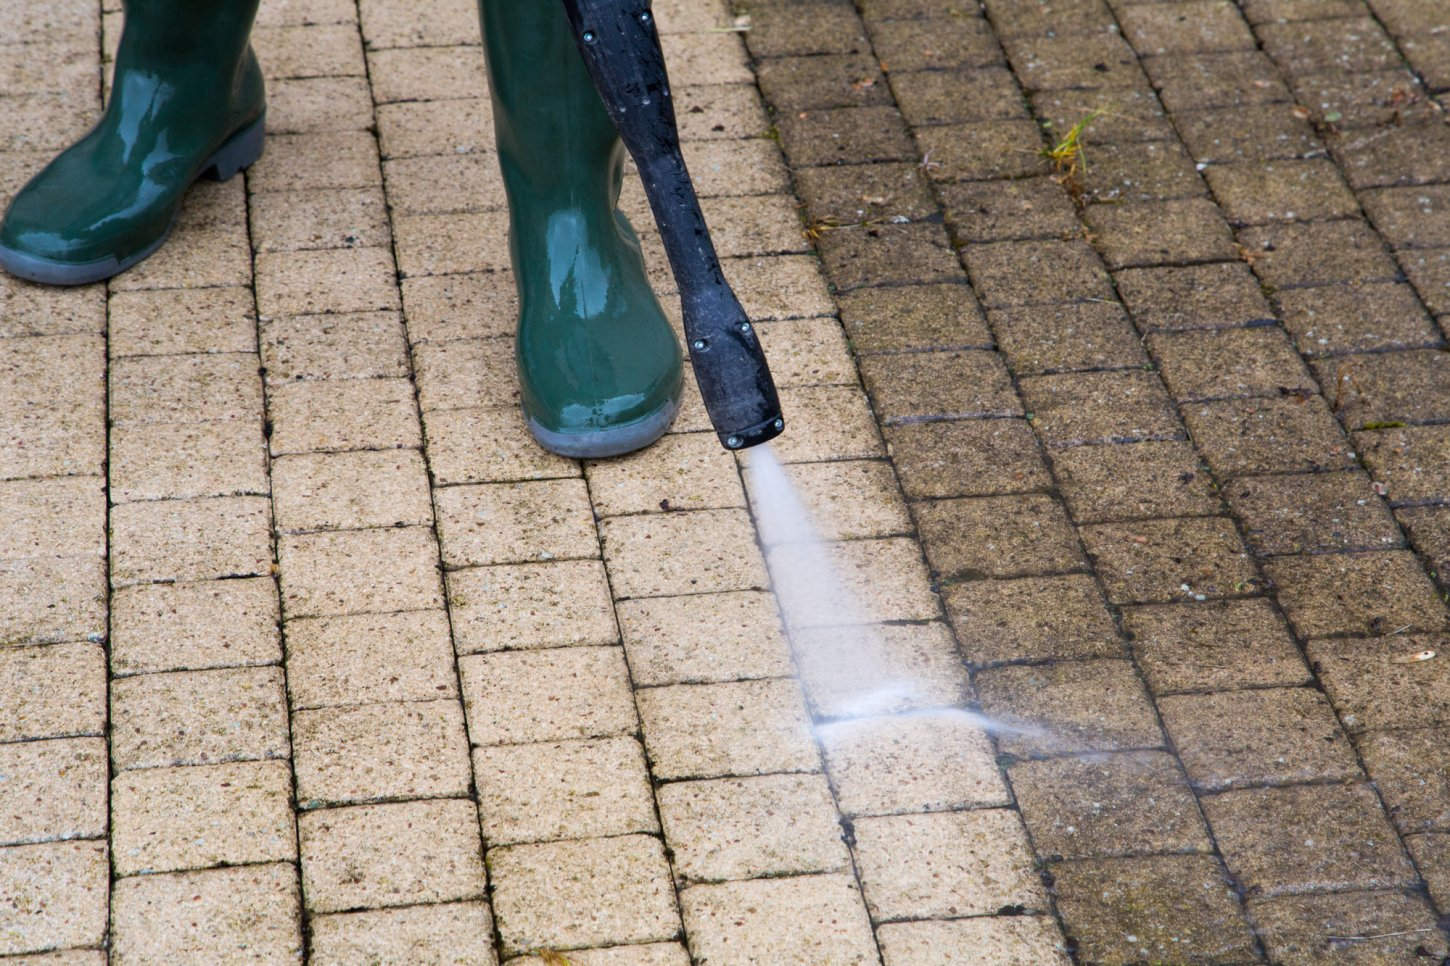 Evans Power Washing